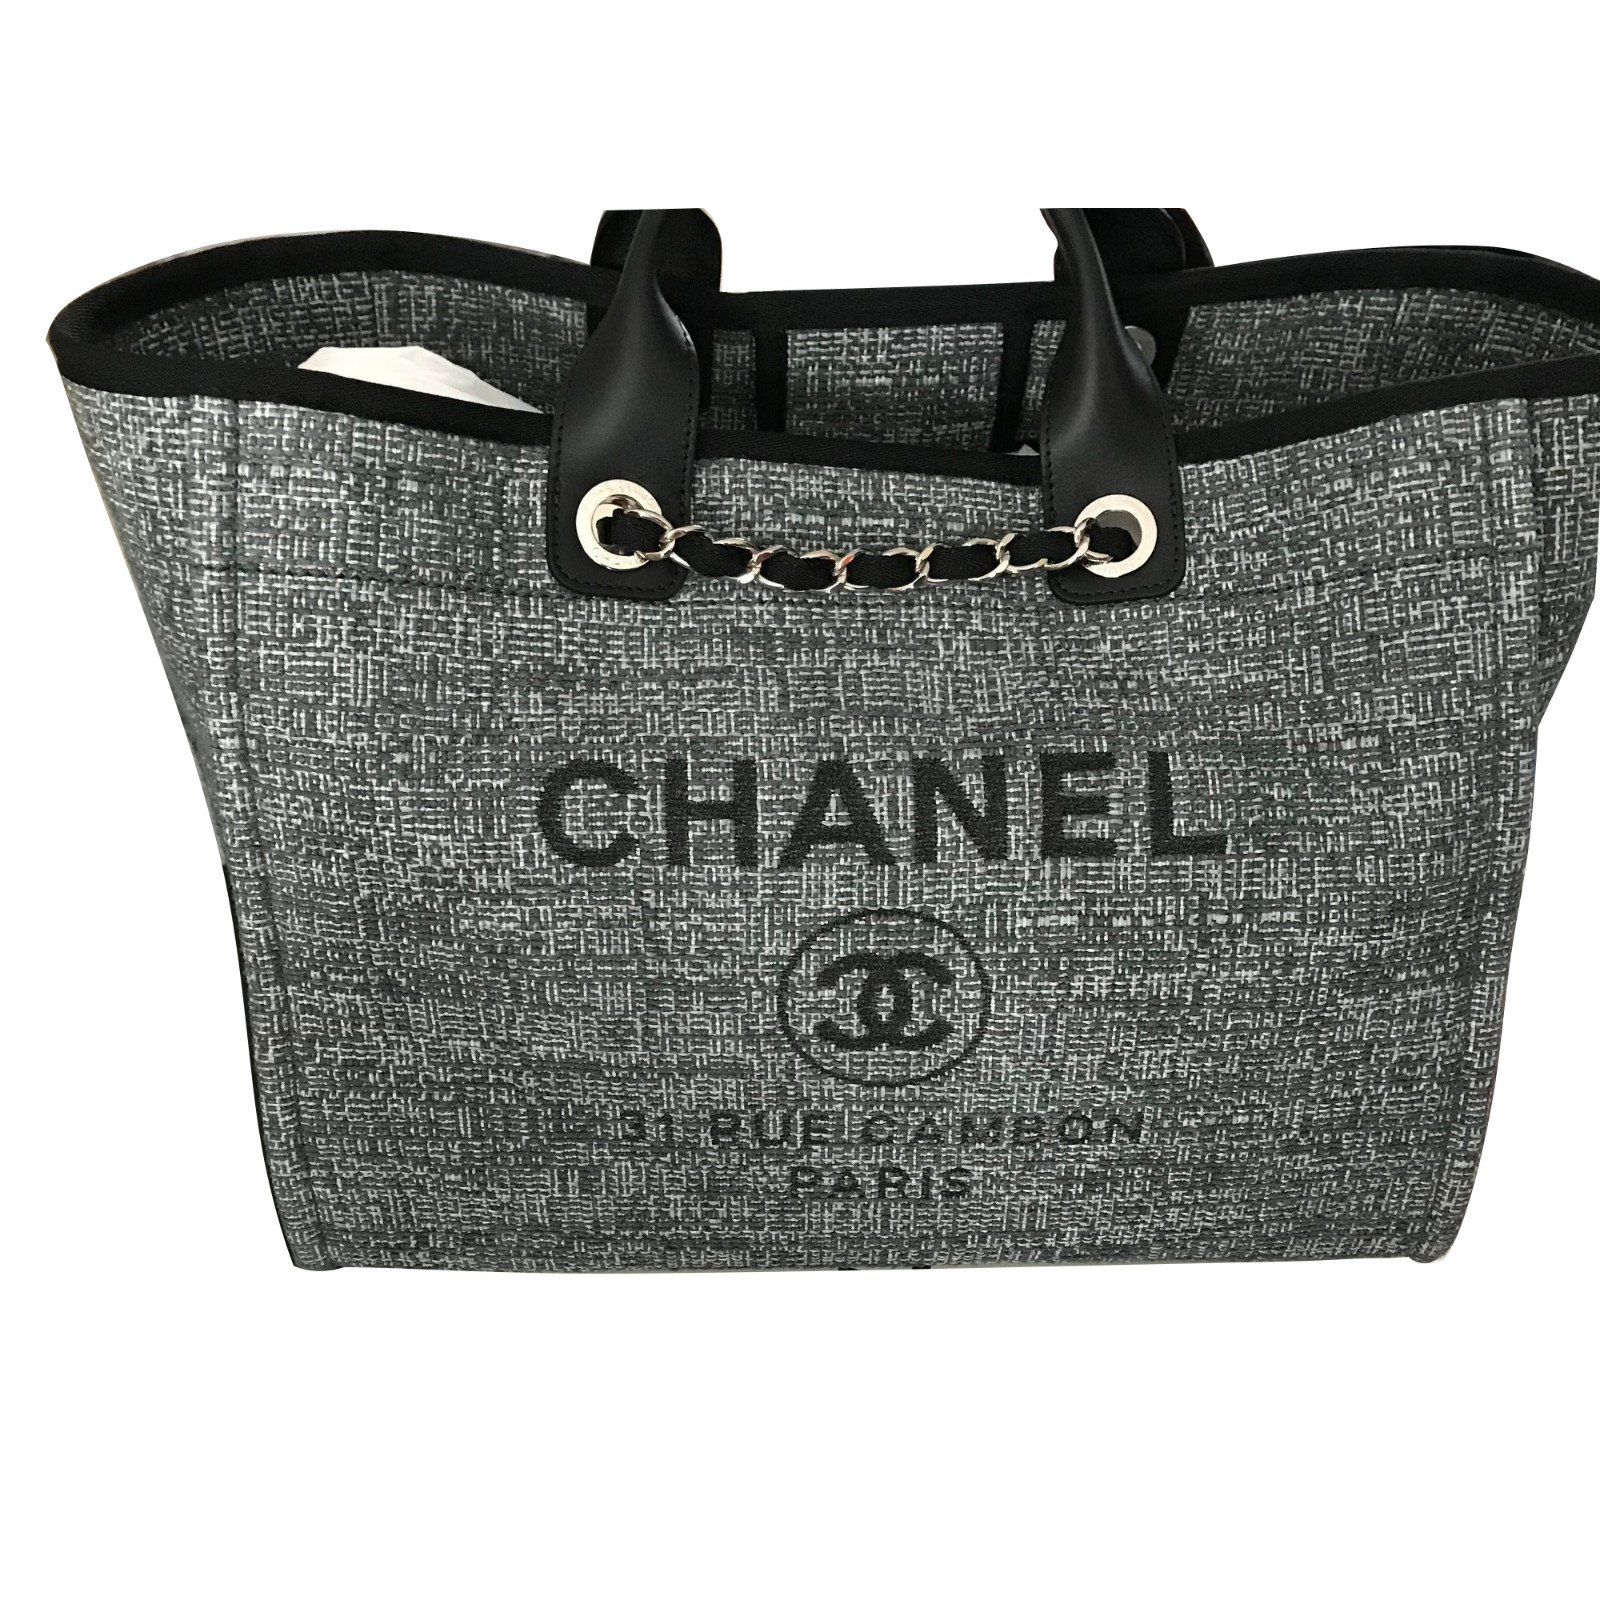 5a3119314430 Chanel Chanel Deauville Large Tote Bag NEW 2018 - Grey with Glitter! Handbags  Cloth Grey